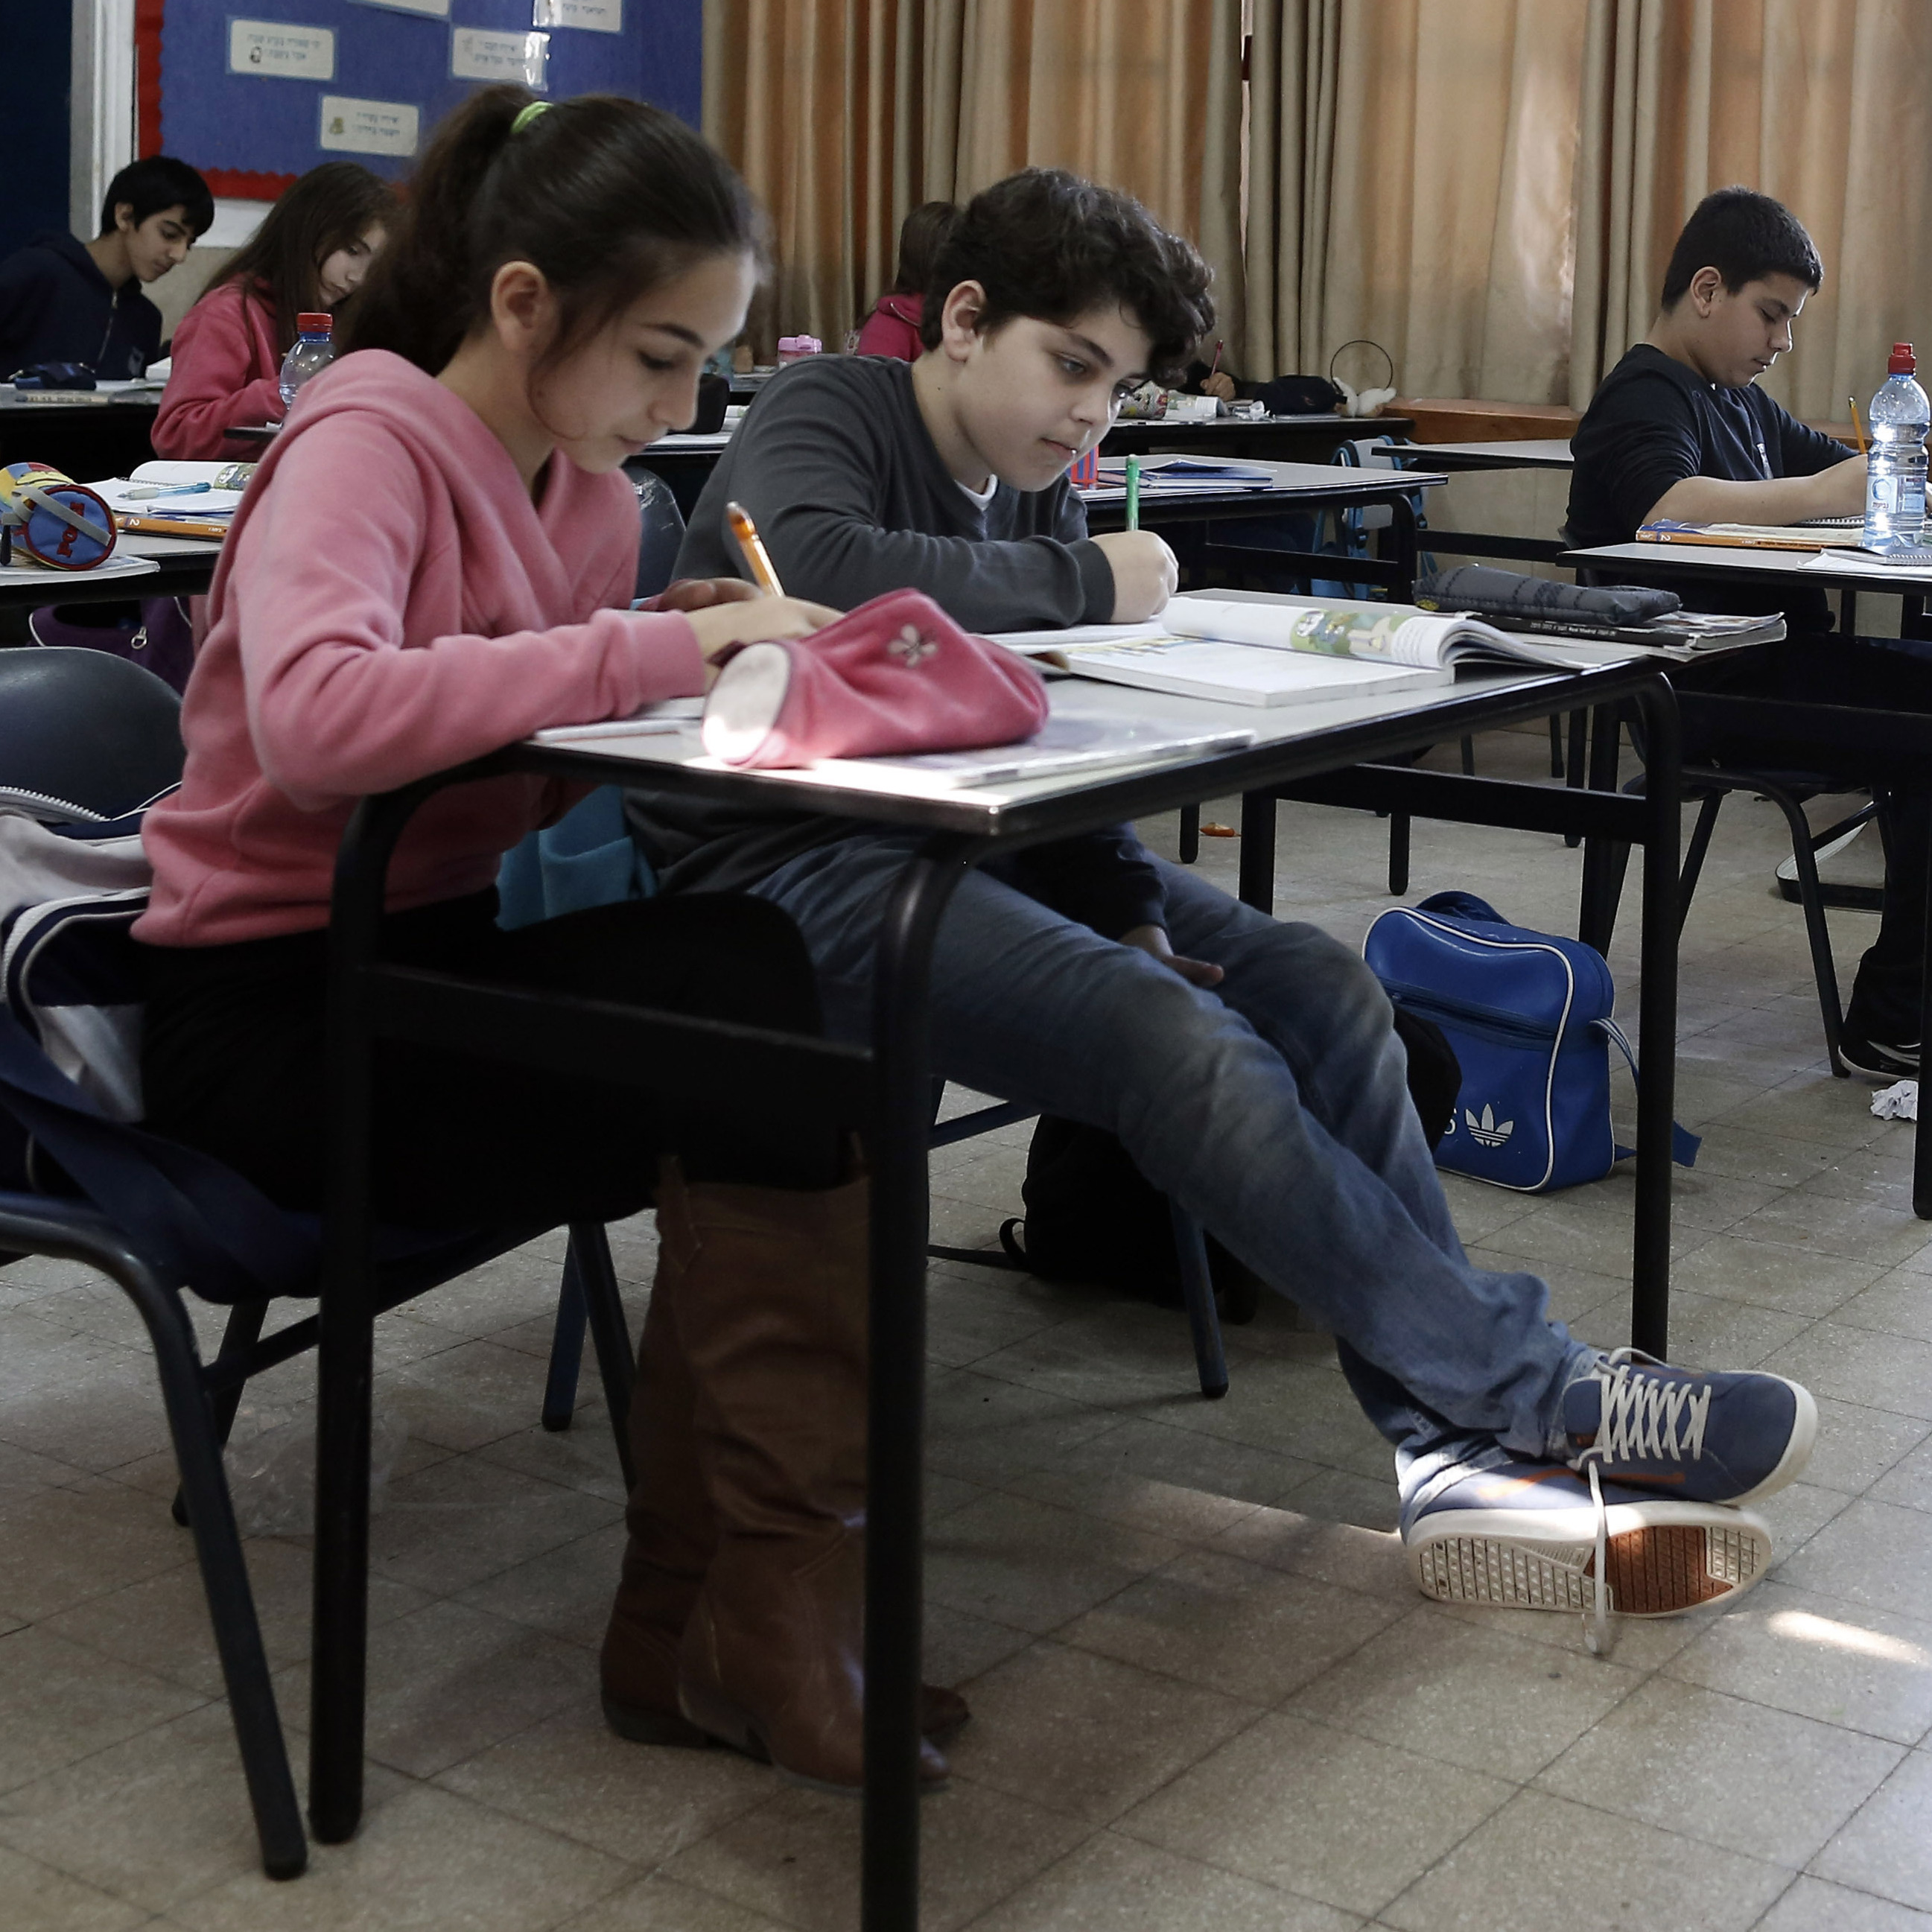 Israeli students attend class at an elementary school in the coastal city of Ashkelon. A U.S.-funded study released Monday said both Israeli and Palestinian textbooks present largely one-sided narratives of their conflict but rarely resort to demonization of the other side.